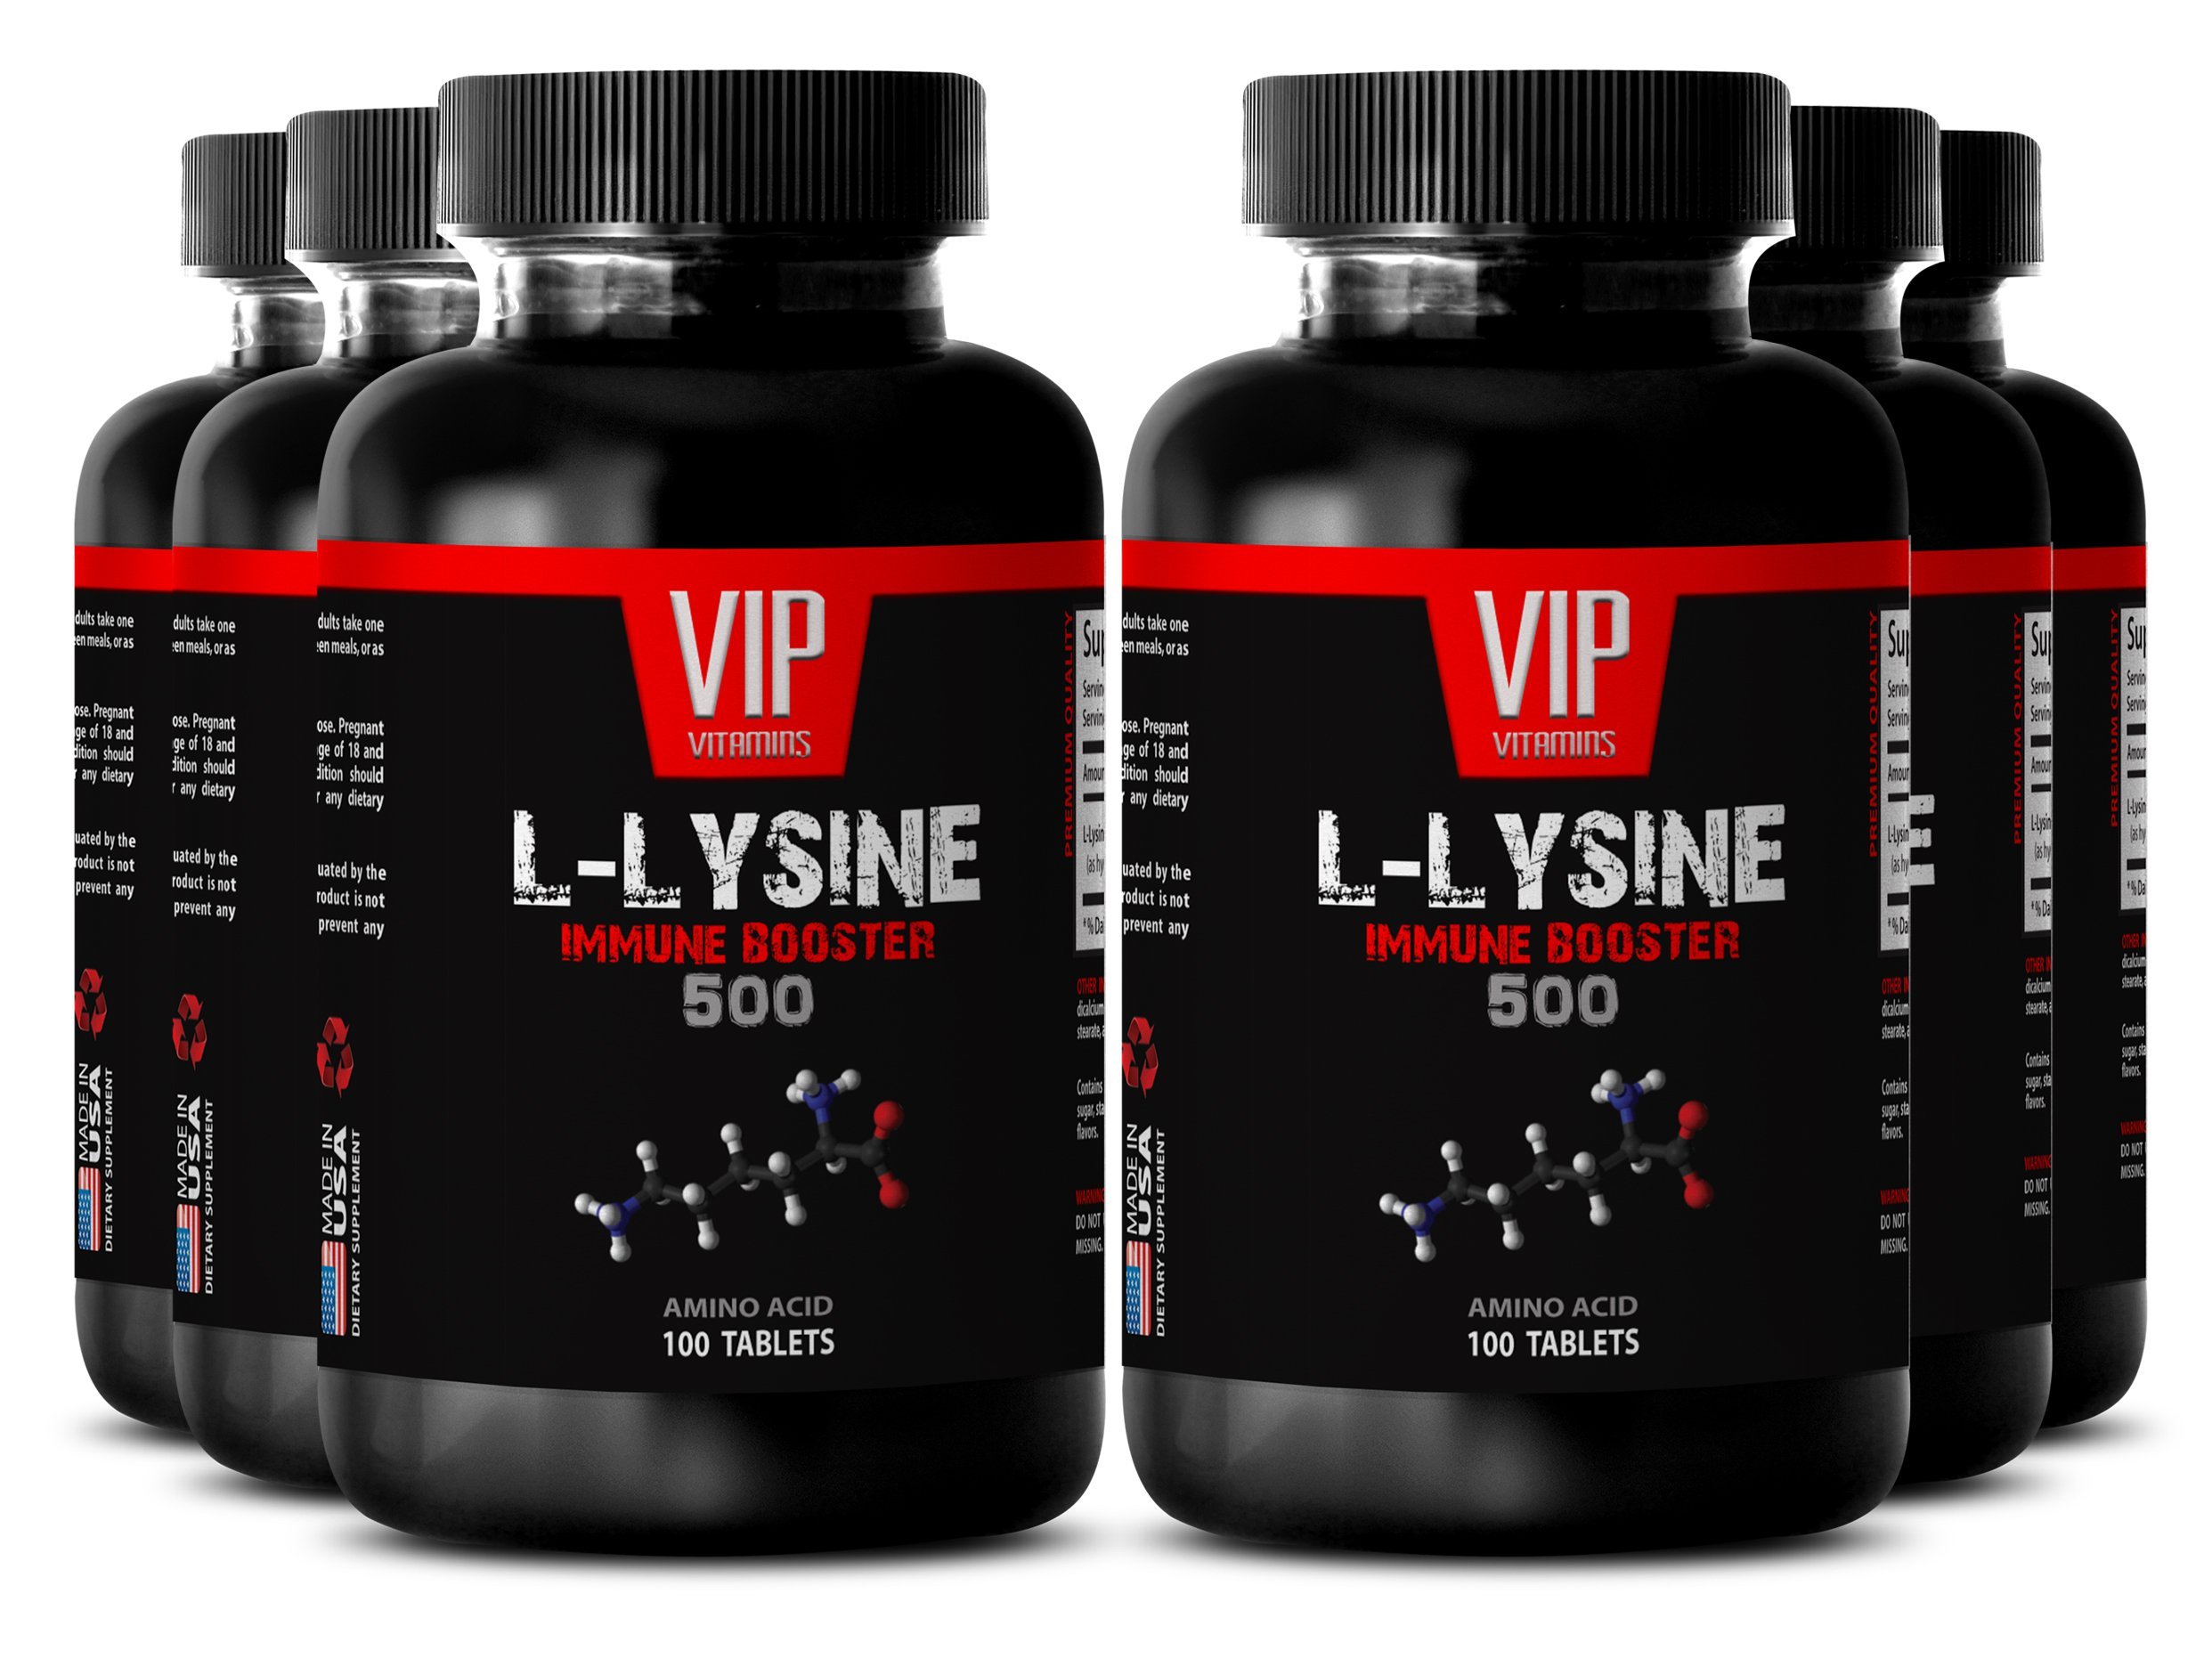 Bodybuilding supplements - L-LYSINE IMMUNE BOOSTER 500 - Bone strength - 6 Bottles 600 tablets